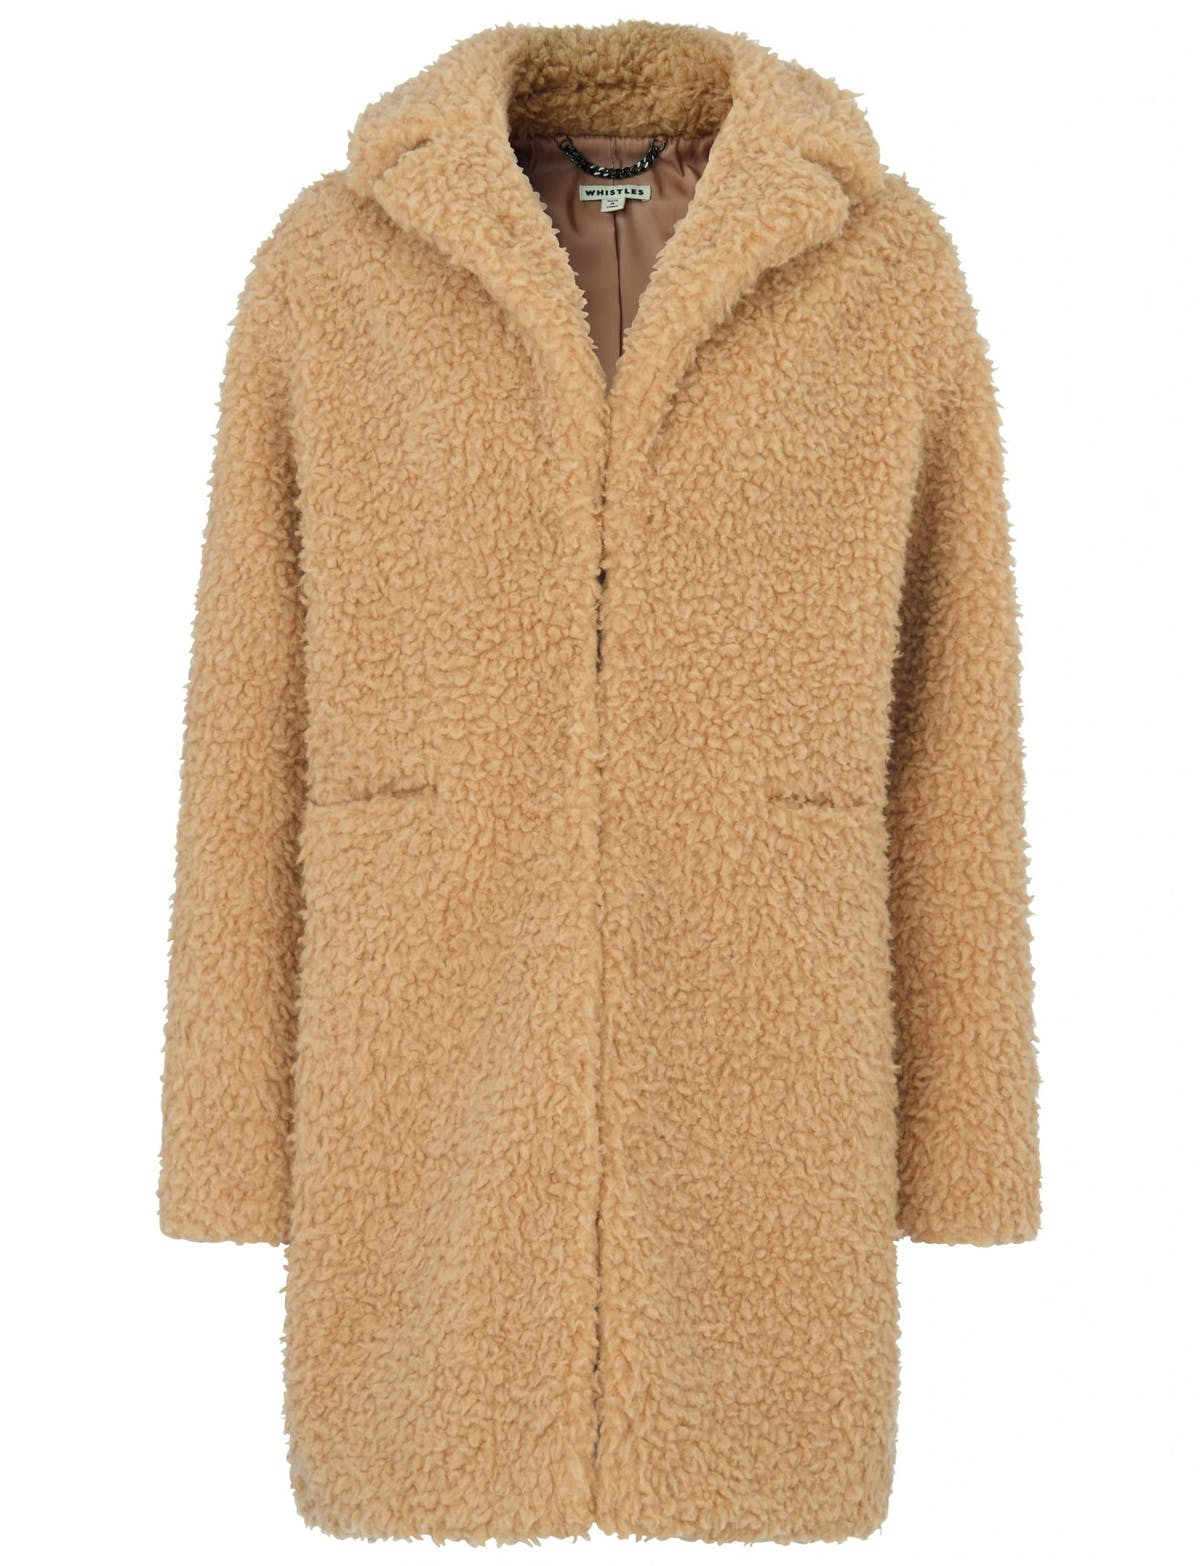 f2feec04a26 Whistles ultimate teddy coat